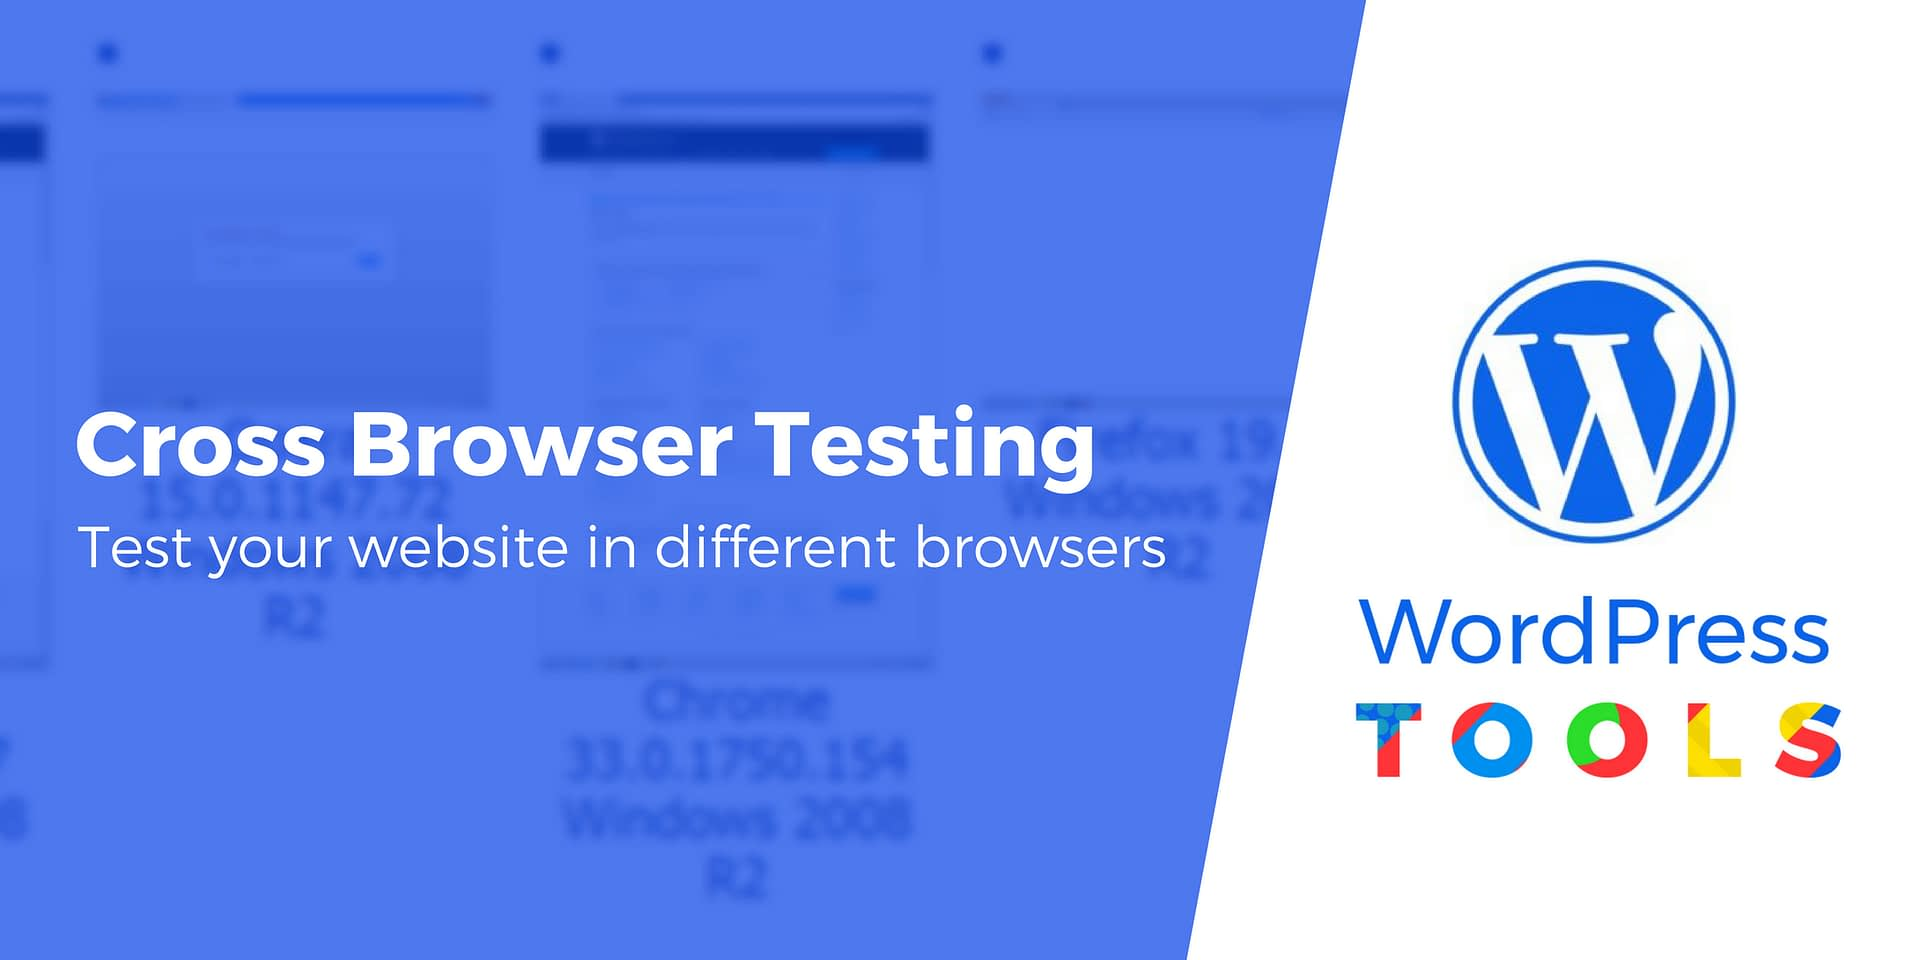 How to Test a Website in Different Browsers the Easy Way (2